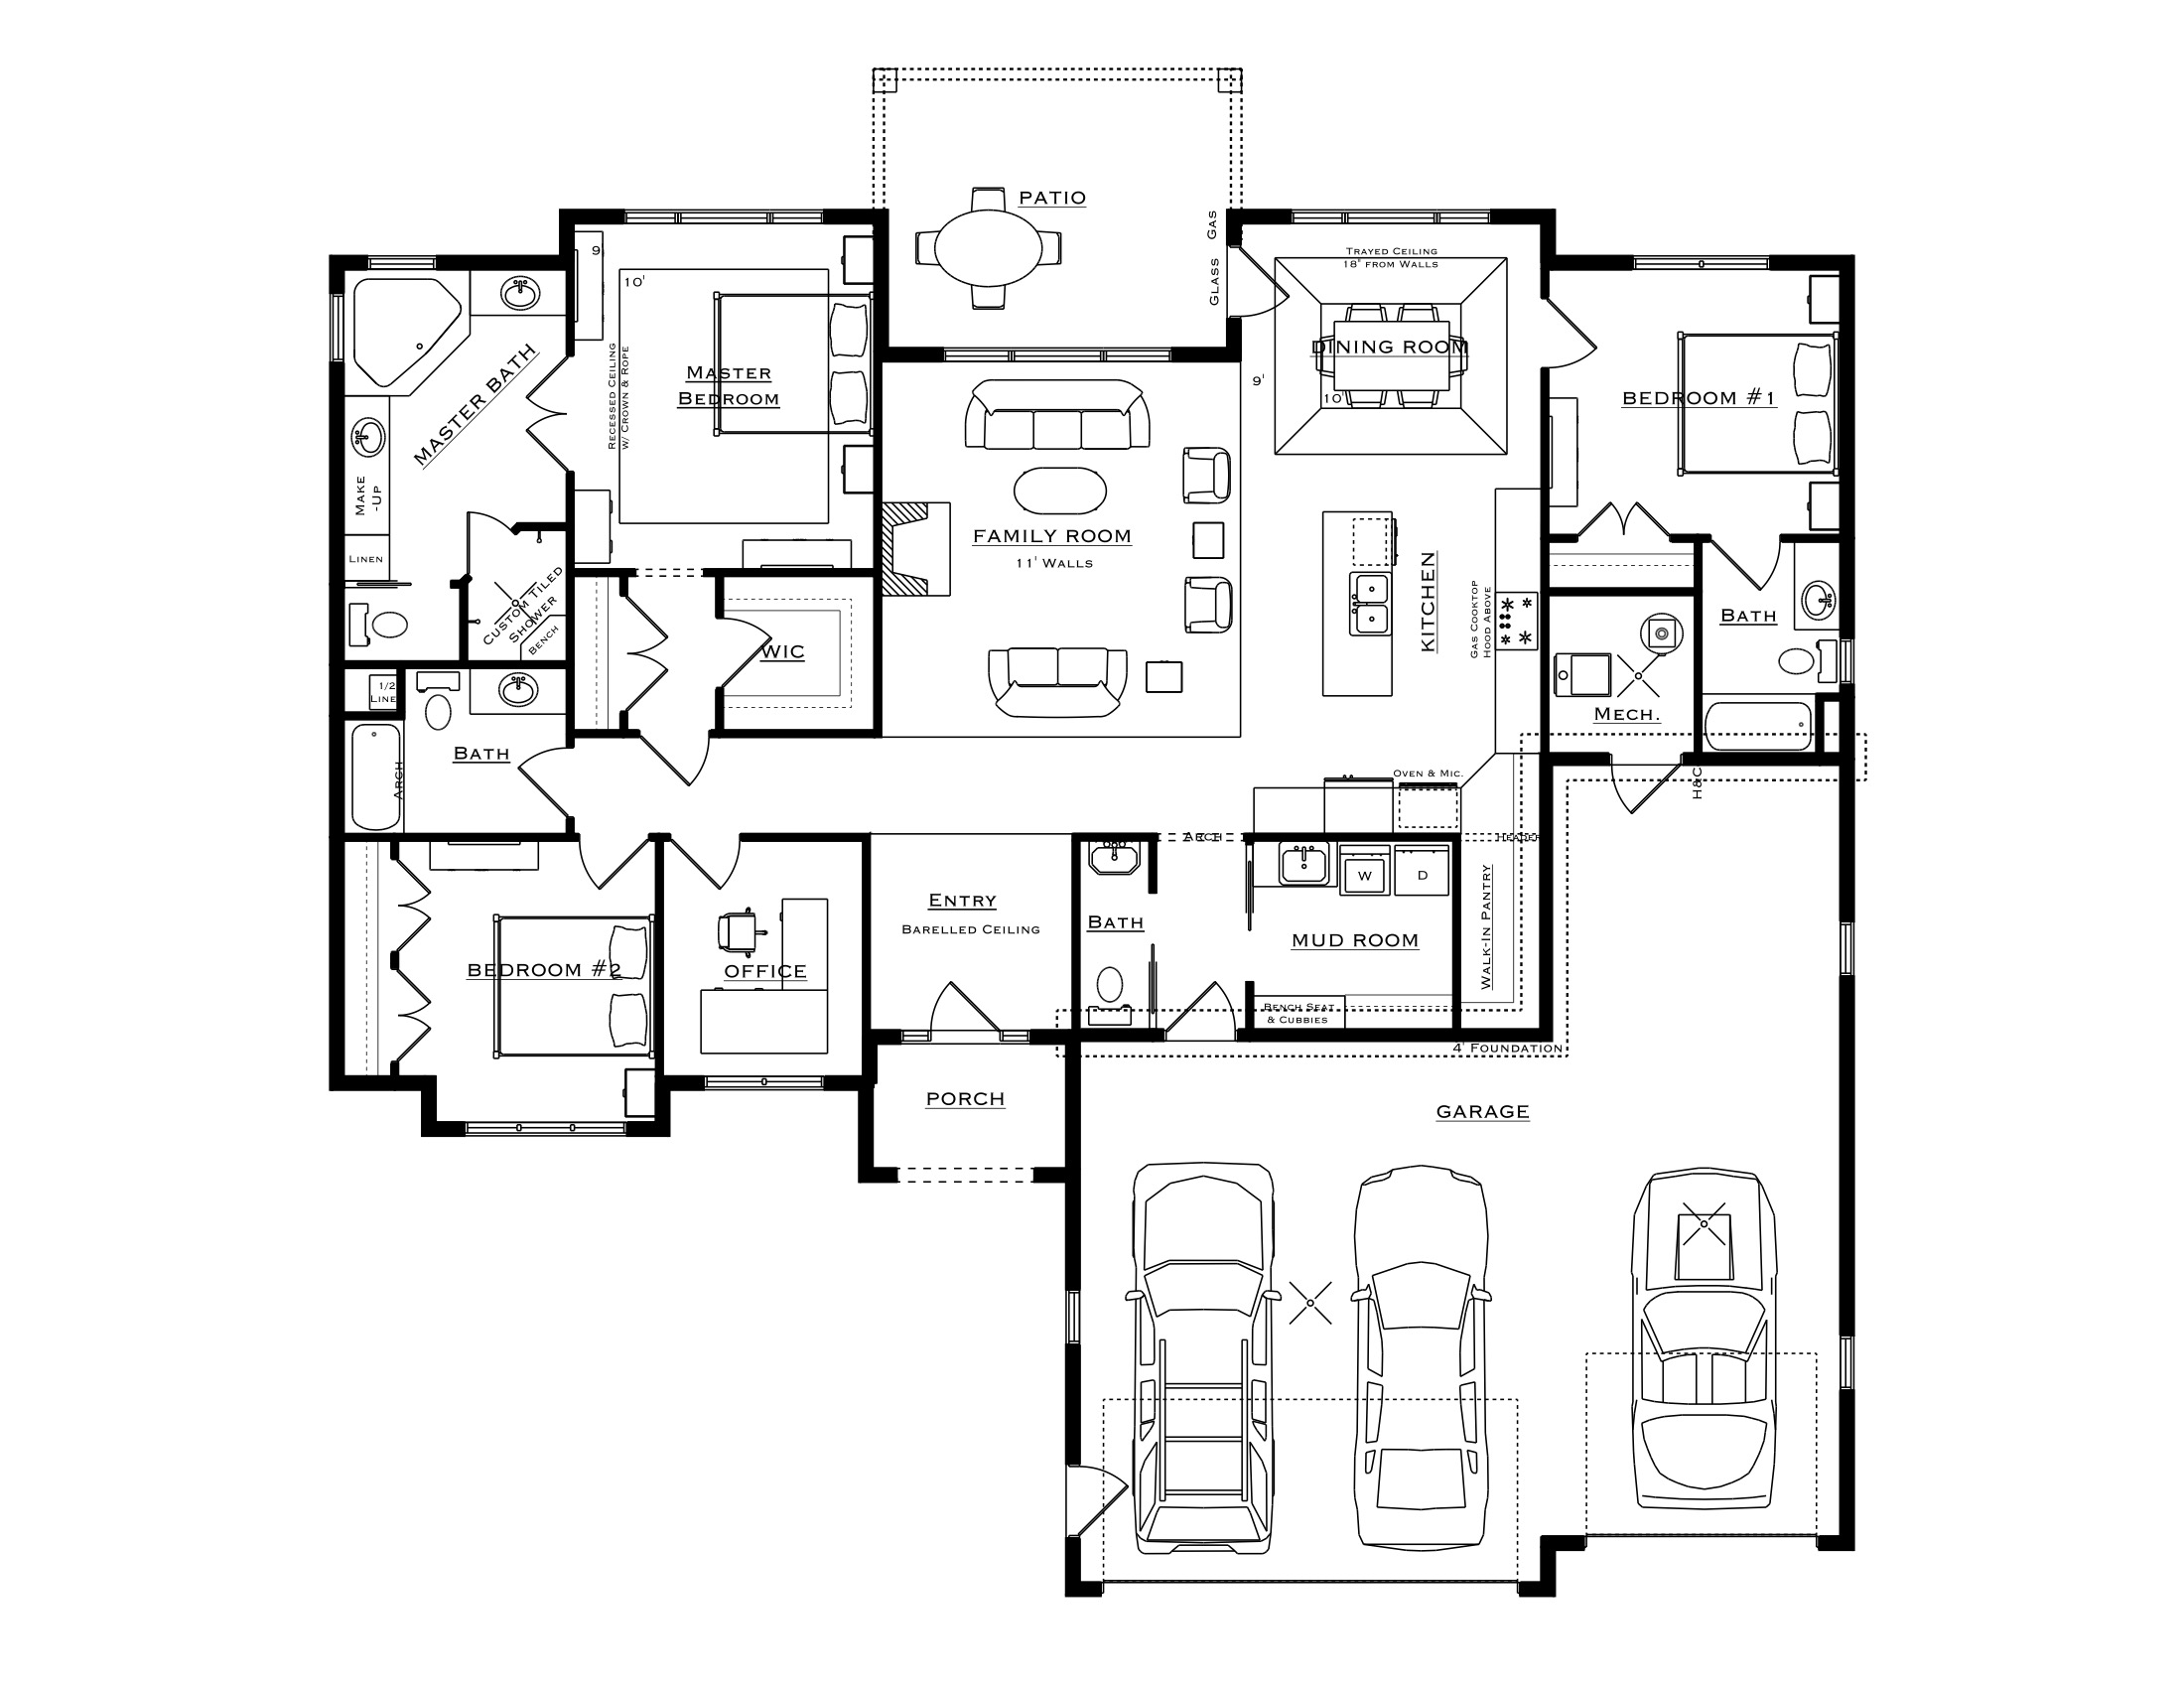 3 Bedroom Captiva Plan